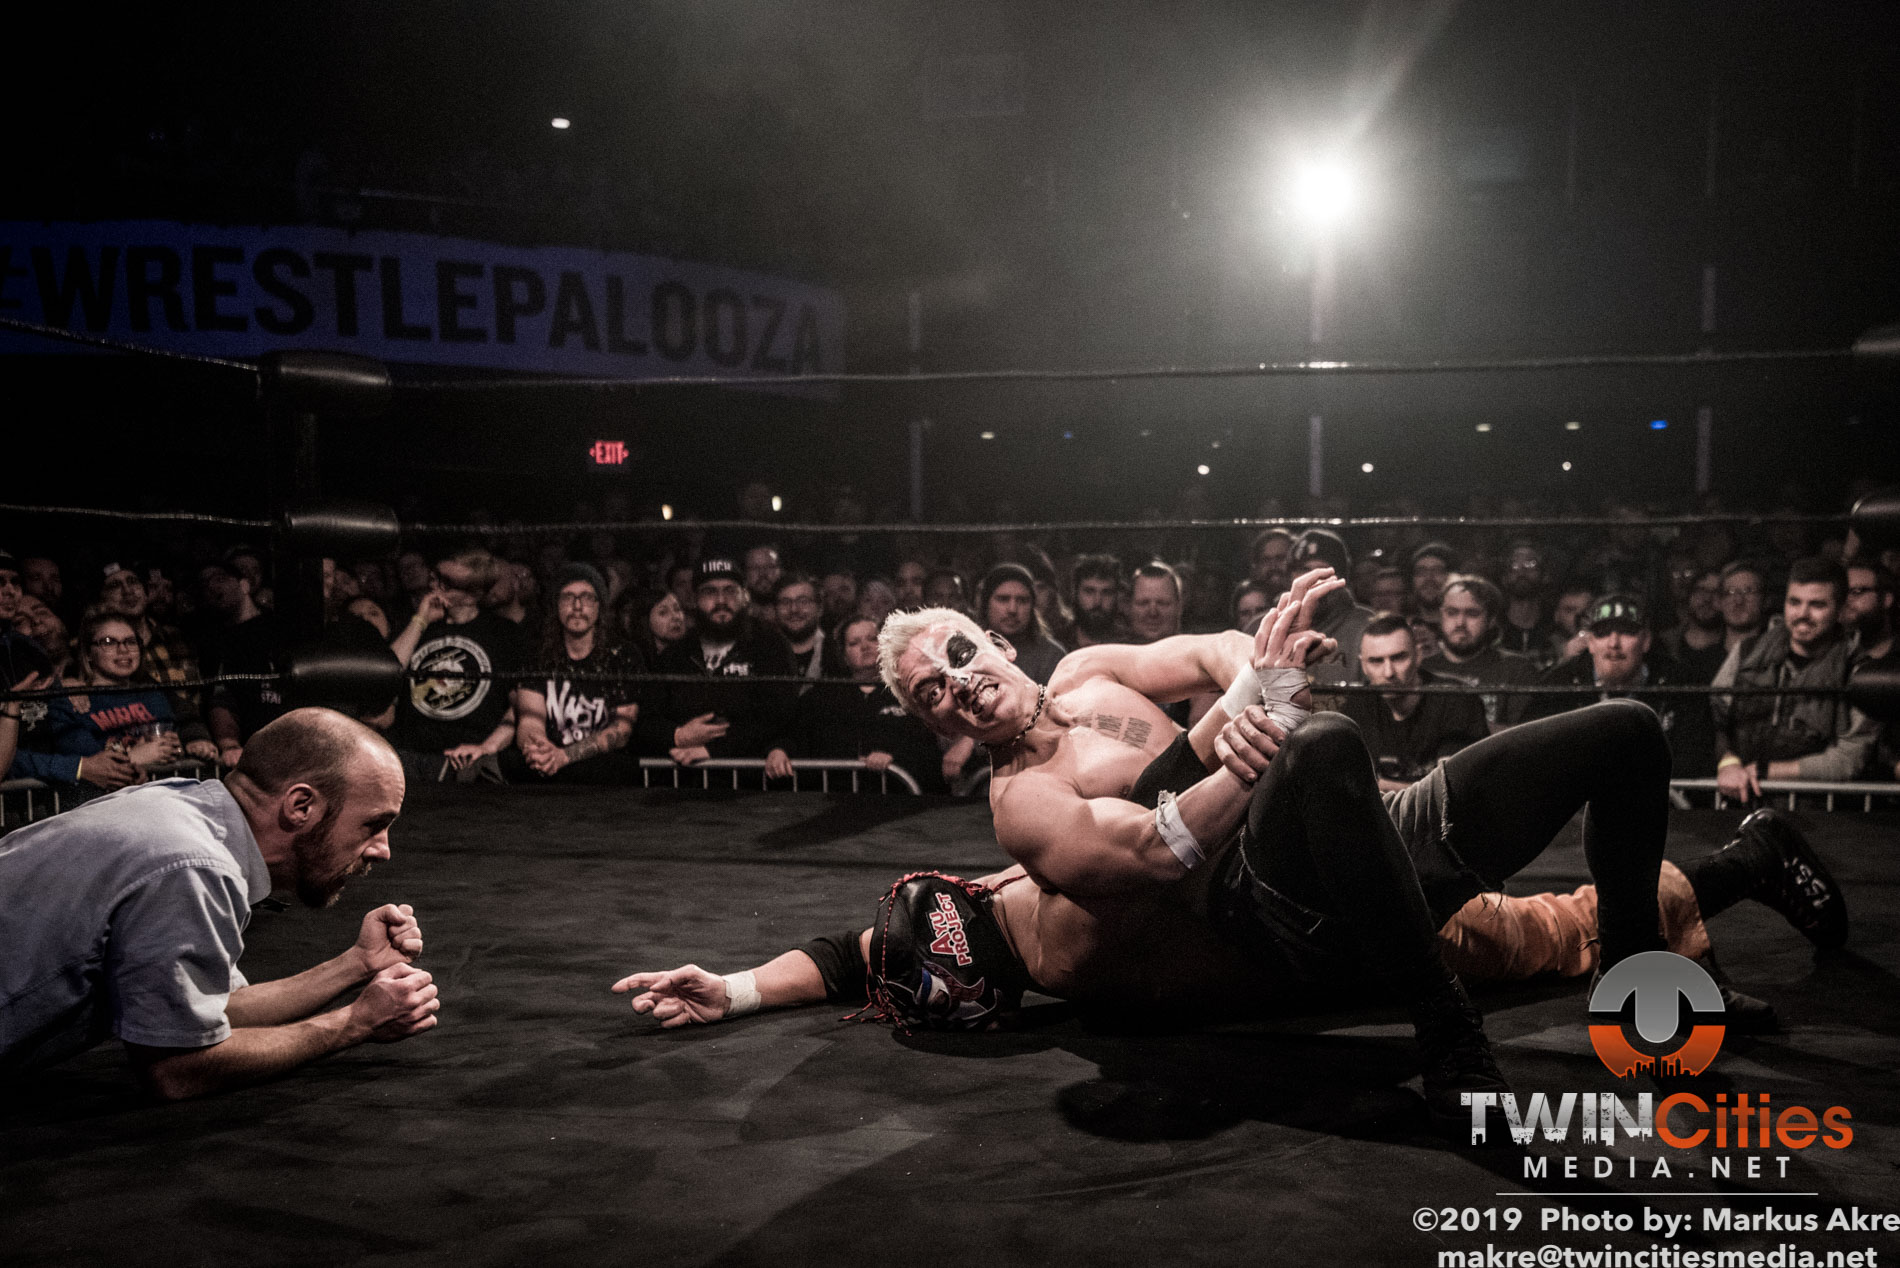 Wrestlepalooza - Match 5-13